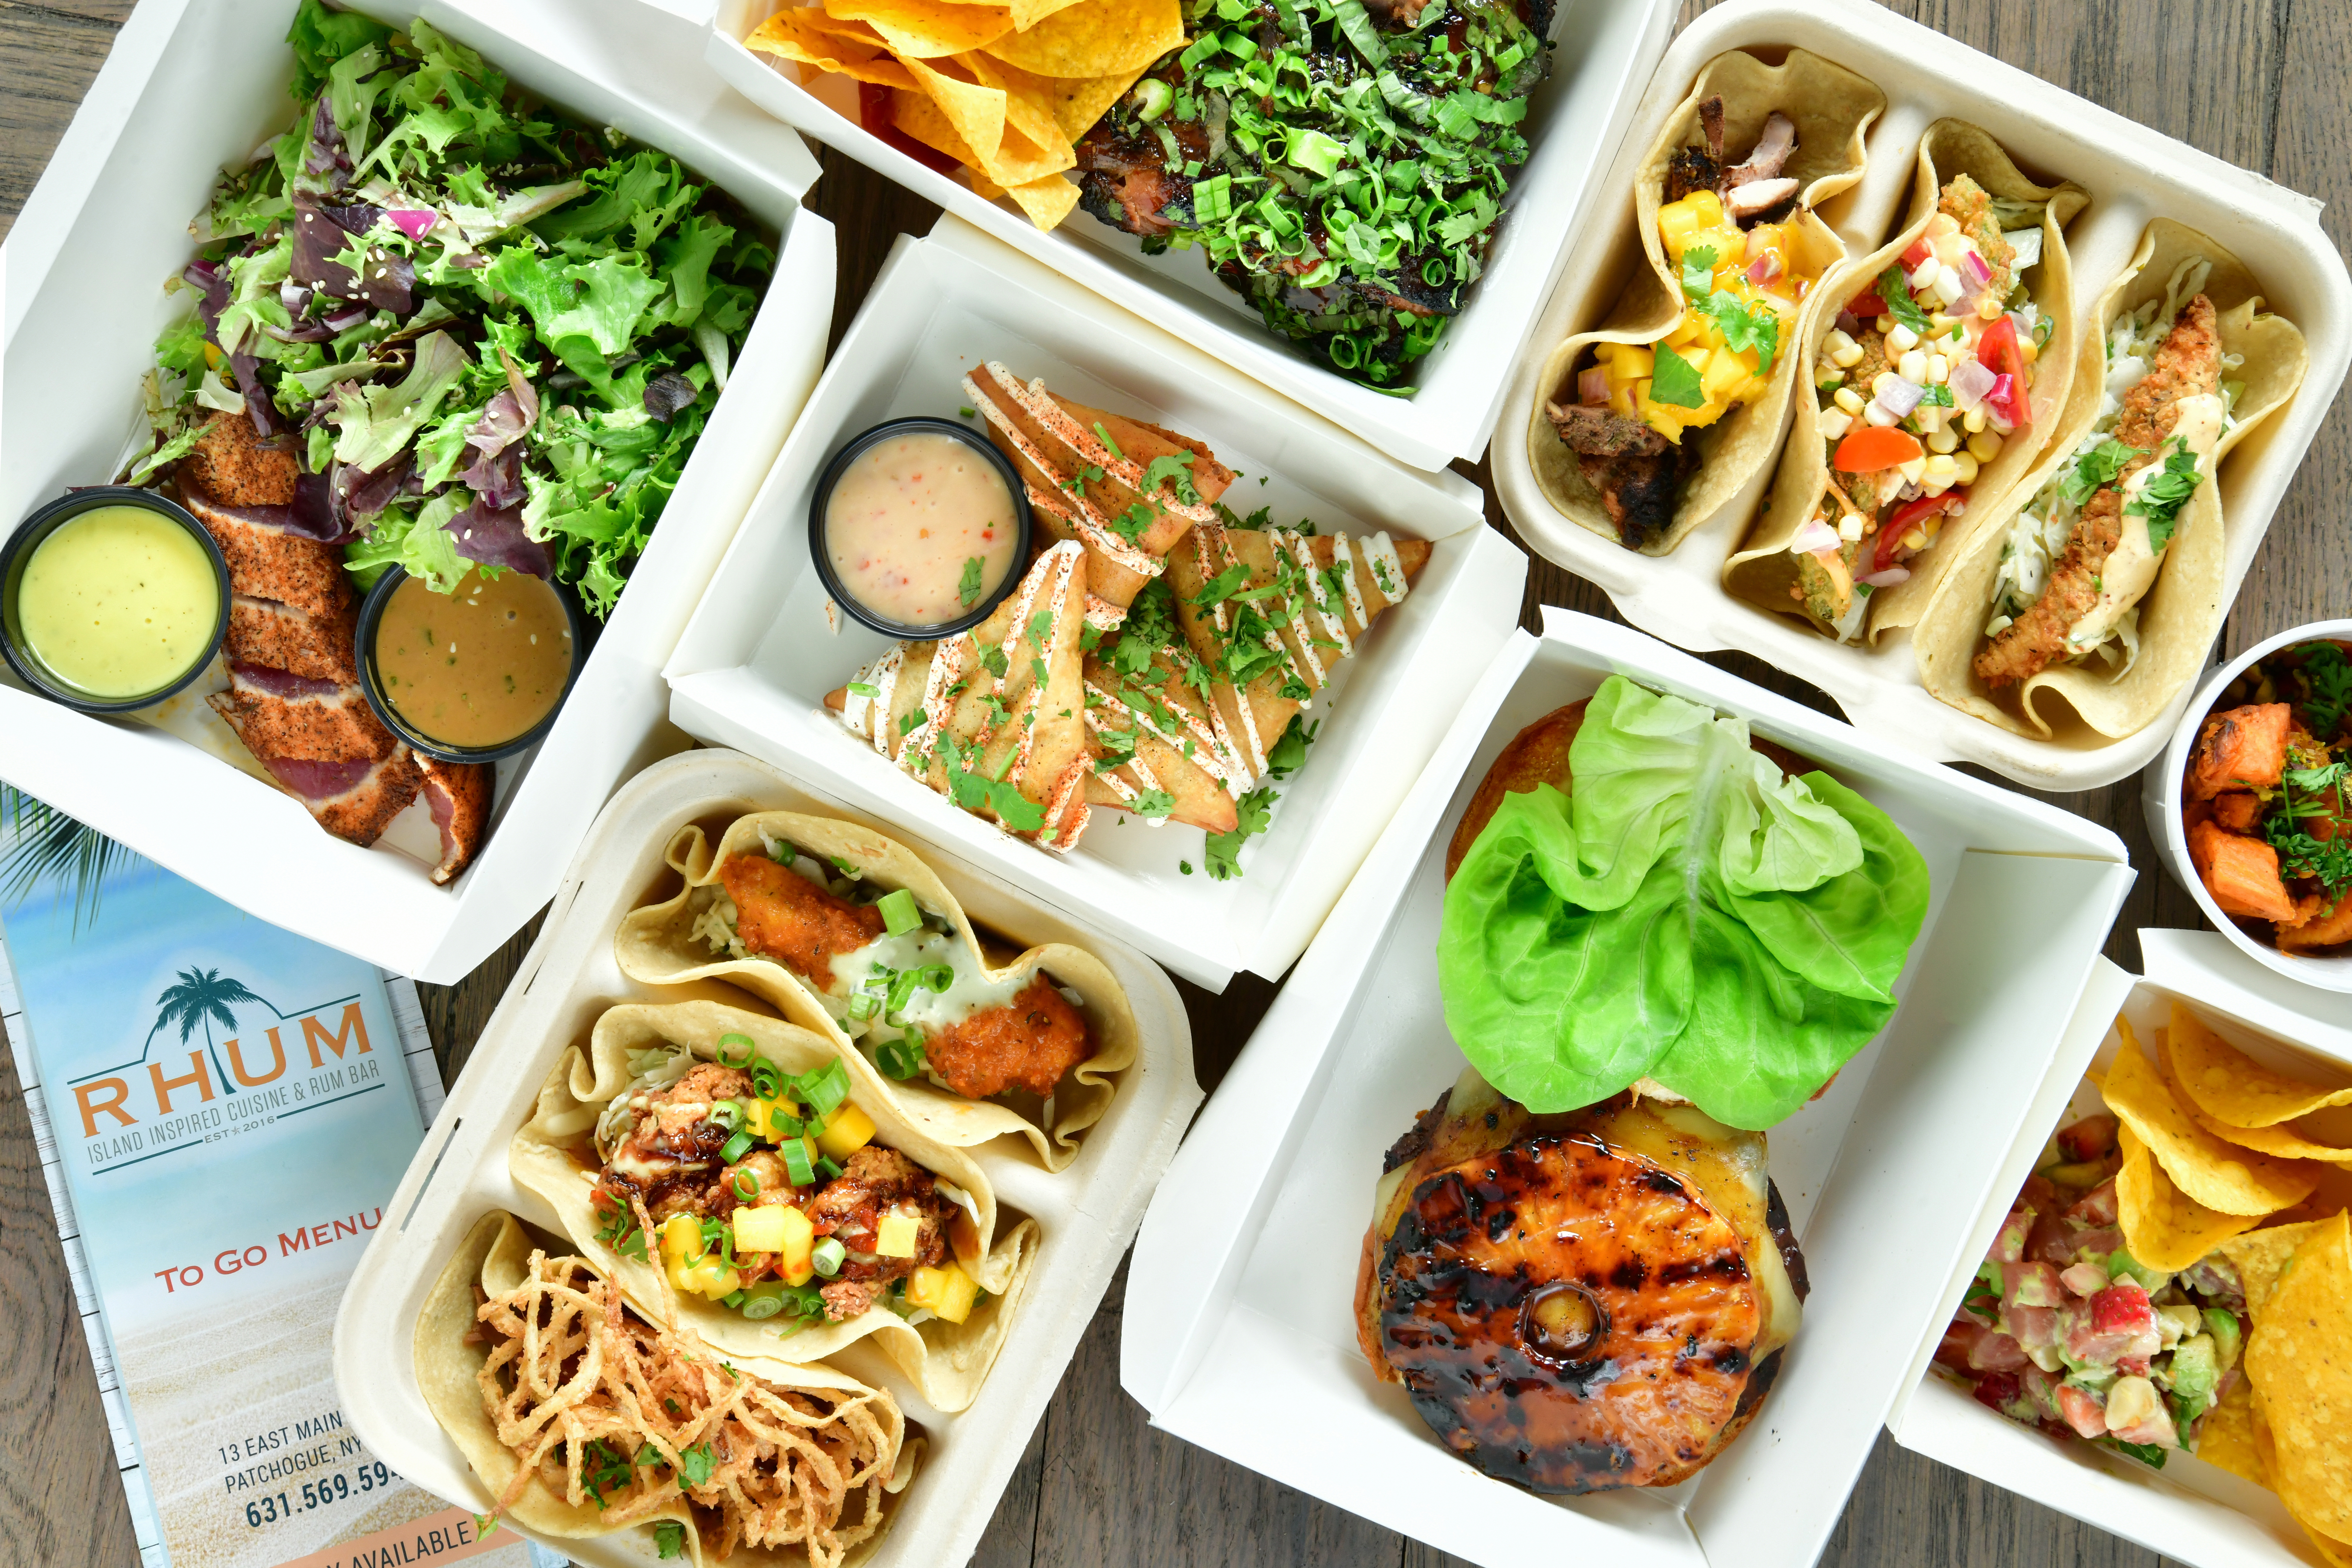 Enjoy takeout from RHUM - available daily.